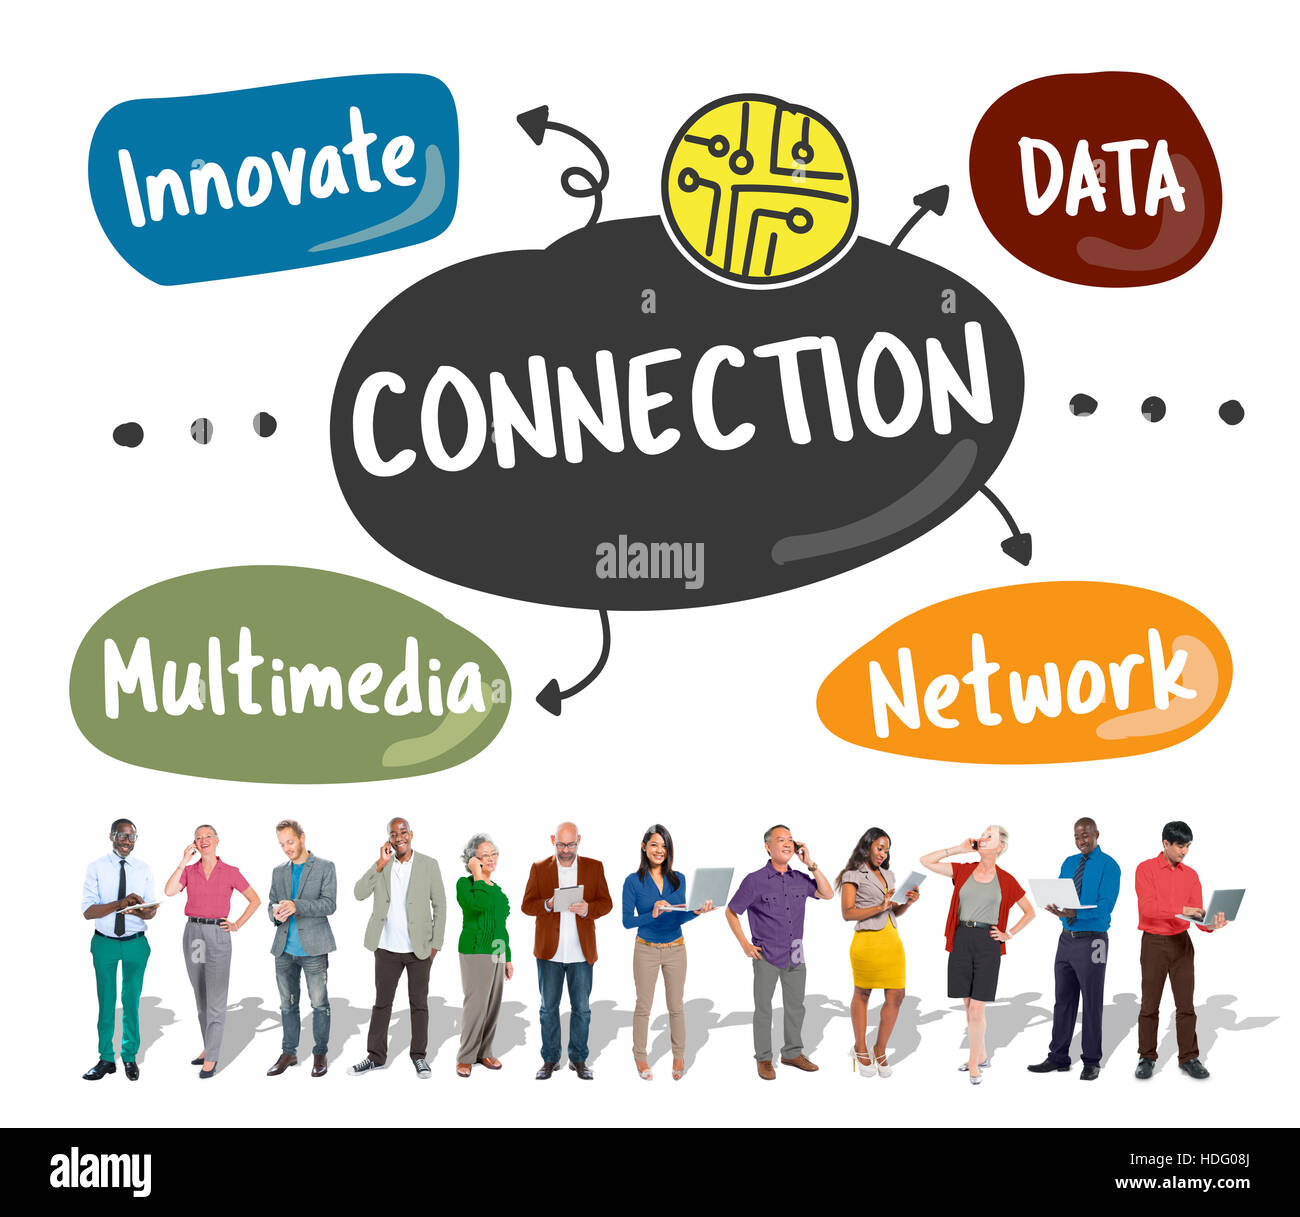 Internet Connection Word Diagram Concept Stock Photo: 128814578 - Alamy